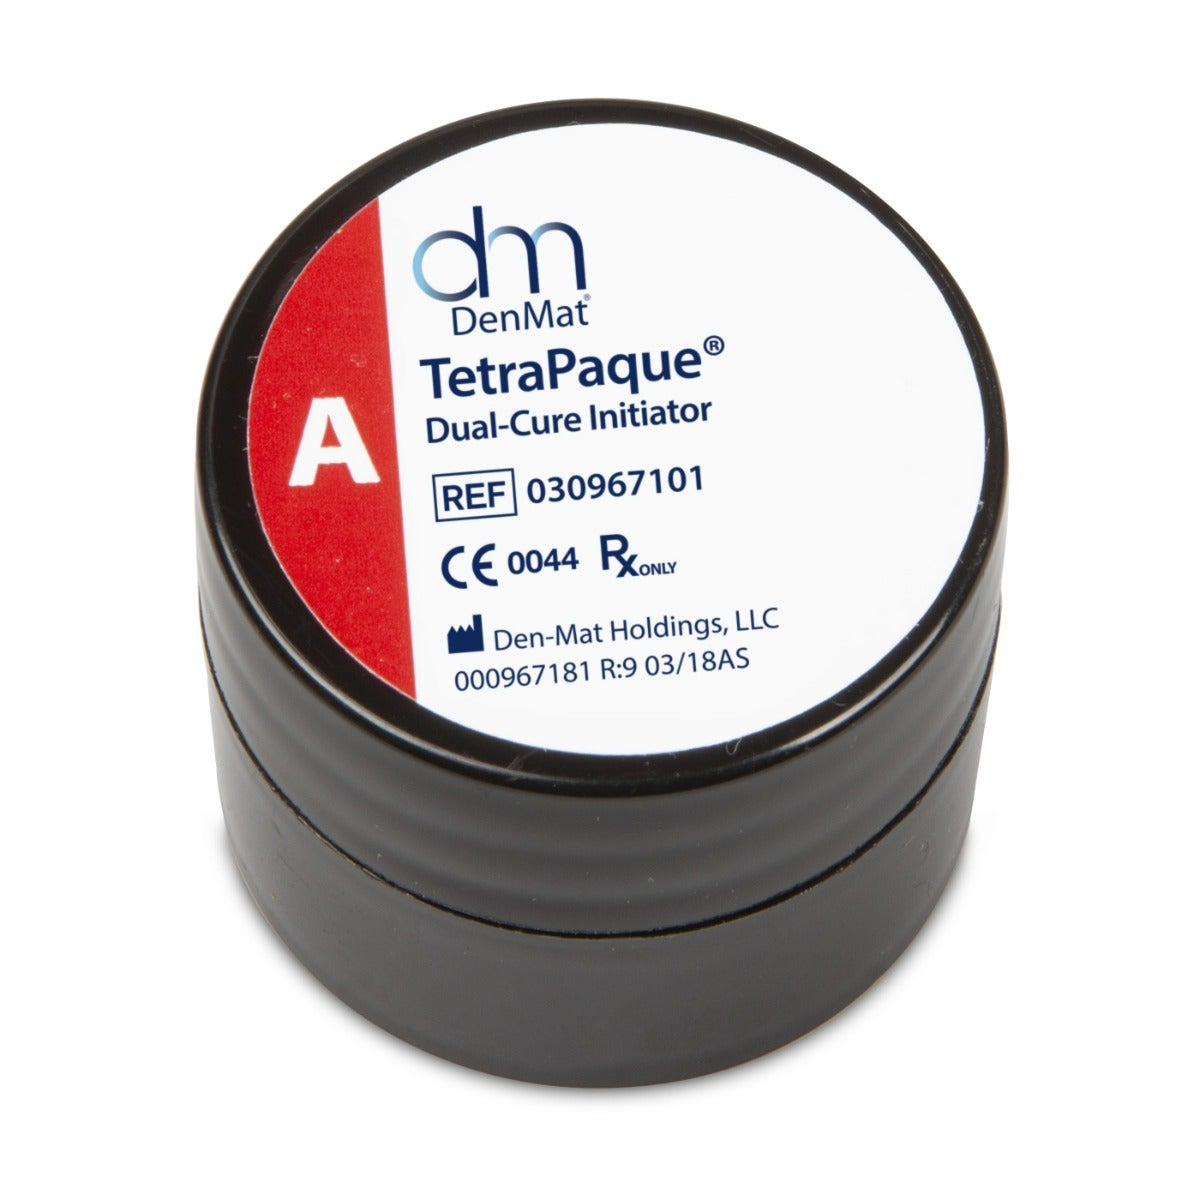 Dental Shade Modification - Tetrapaque Dual-Cure Initiator